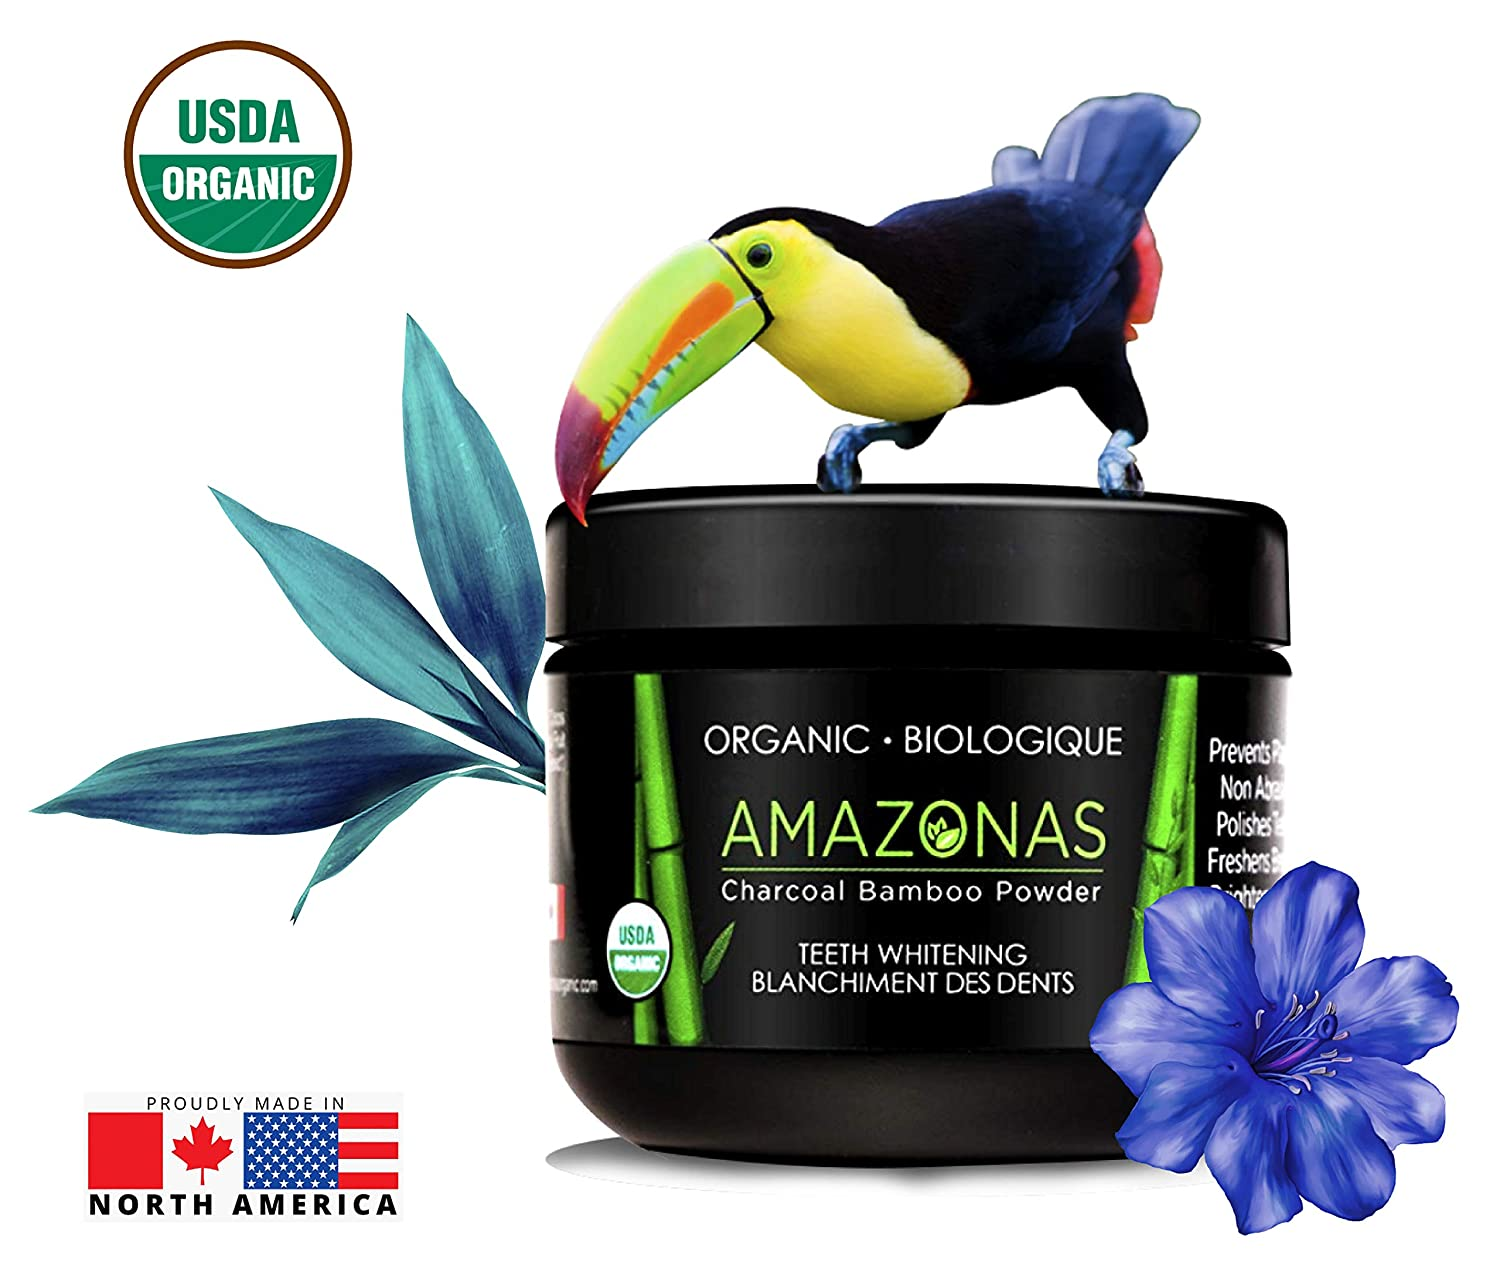 Amazonas Organic - Bamboo Charcoal Powder Kit - FREE Biodegradable Toothbrush & Jute Bag. Proven Natural Vegan Teeth Whitening, Safer than Activated Charcoal For Sensitive Teeth & Gums - USDA Certified & 100% Made in Canada.